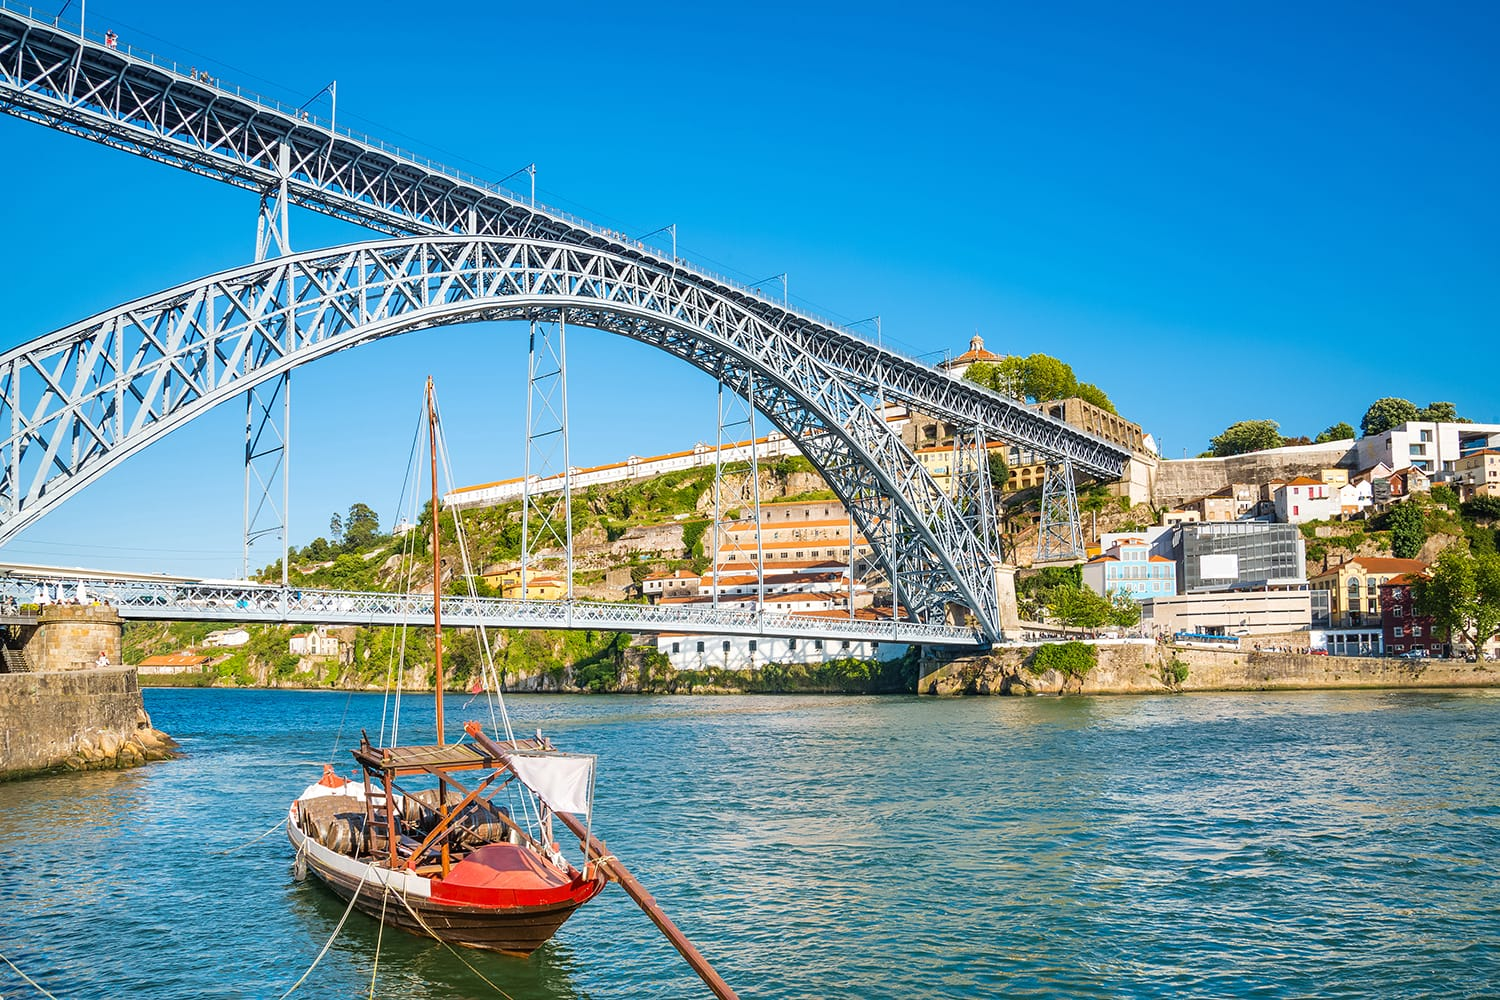 Oporto or Porto city skyline, Douro river, traditional boats and Dom Luis or Luiz iron bridge. Portugal, Europe.